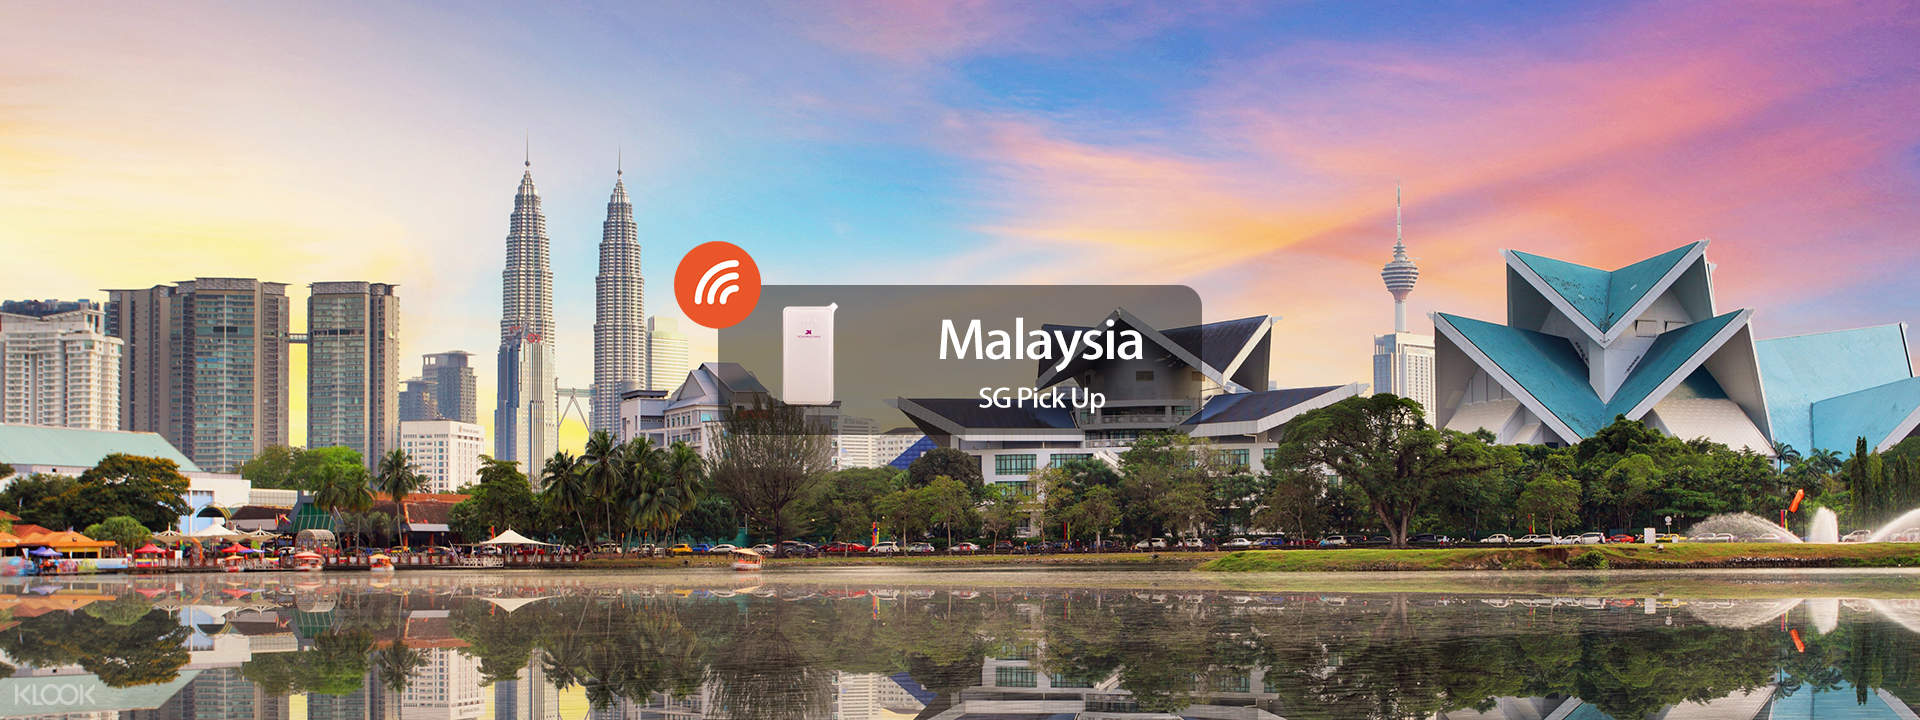 4G WiFi (SG Pick Up) for Malaysia - Klook